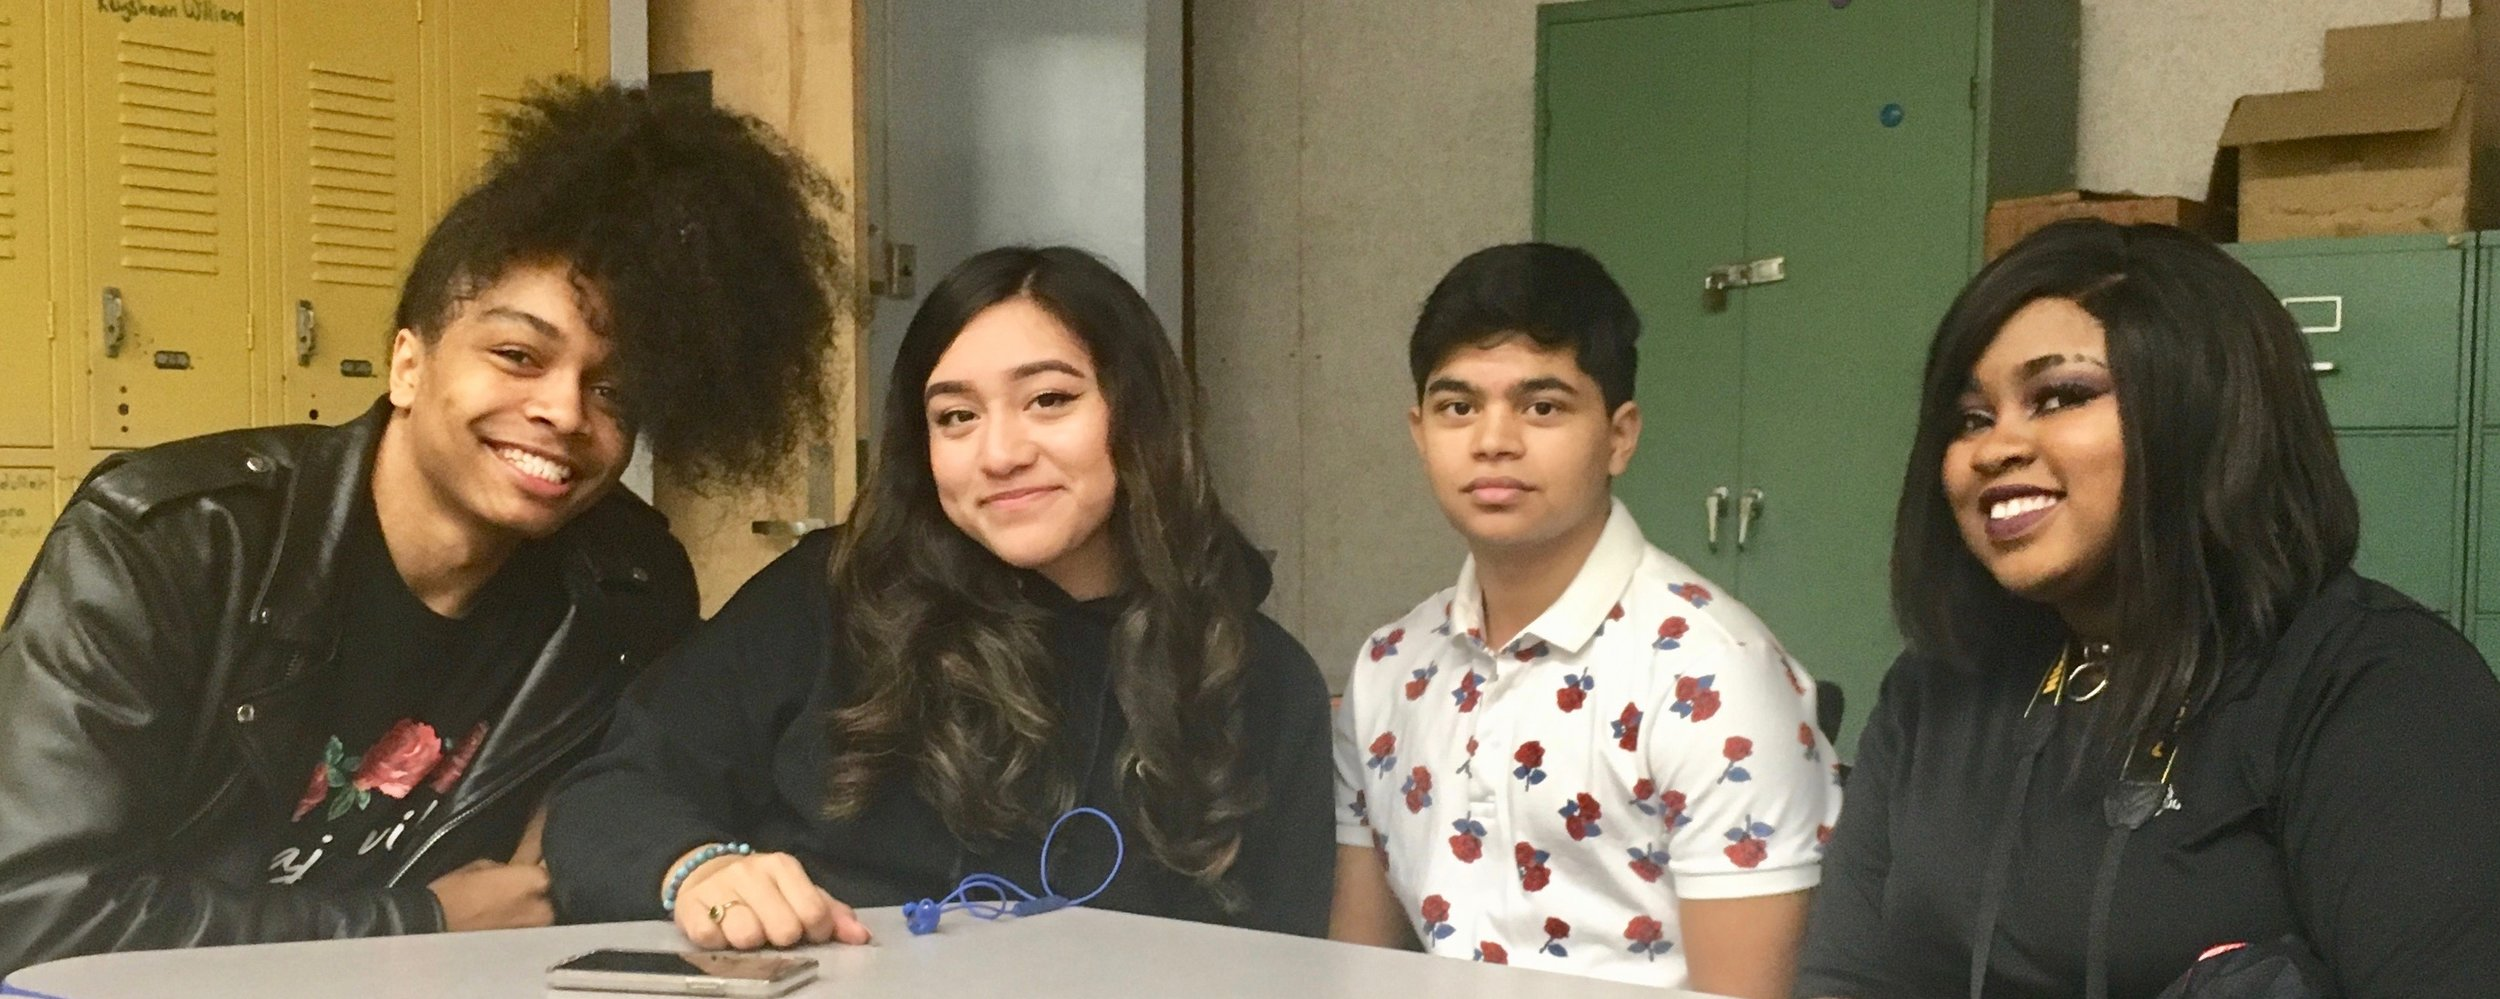 Four college freshmen who are alums from UA Maker's first graduating class of 2018 shared about their experience of college so far. From left: Richard attends NYC College of Technology; Jazlyn attends City College; Milam attends Dennison College; Ash attends Allegheny College.